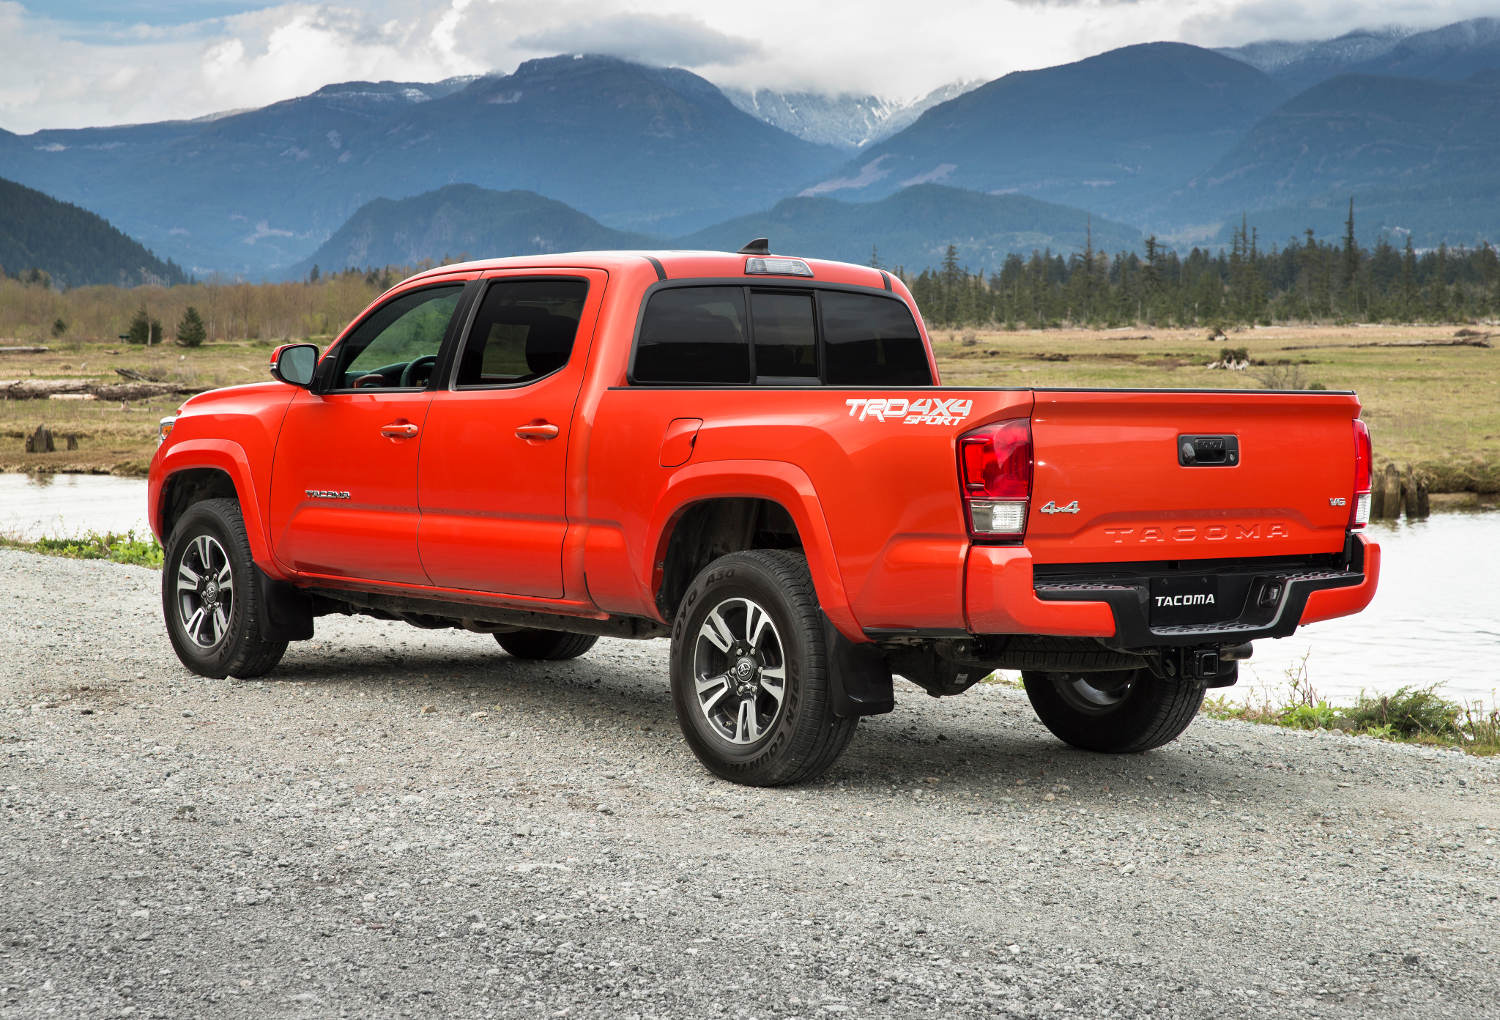 comparison toyota tacoma double cab trd pro 2015 vs gmc canyon crew cab slt 2015 suv drive. Black Bedroom Furniture Sets. Home Design Ideas